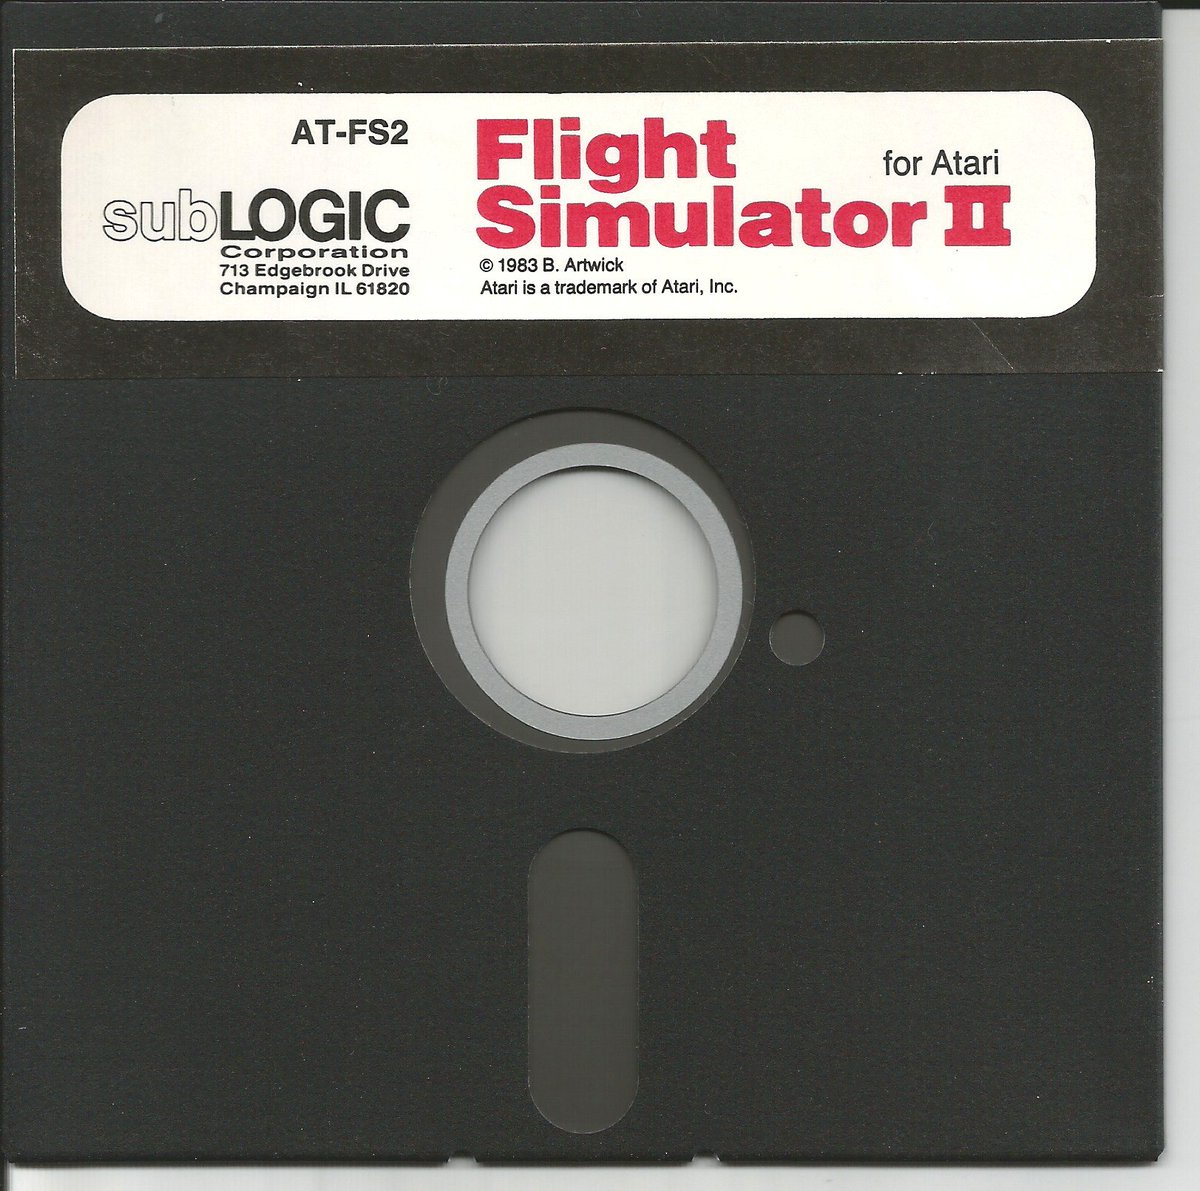 #Atari 8-bit #SubLogic Flight Simulator 2 #Kryofluxed. https://t.co/NjFmOy05Qv